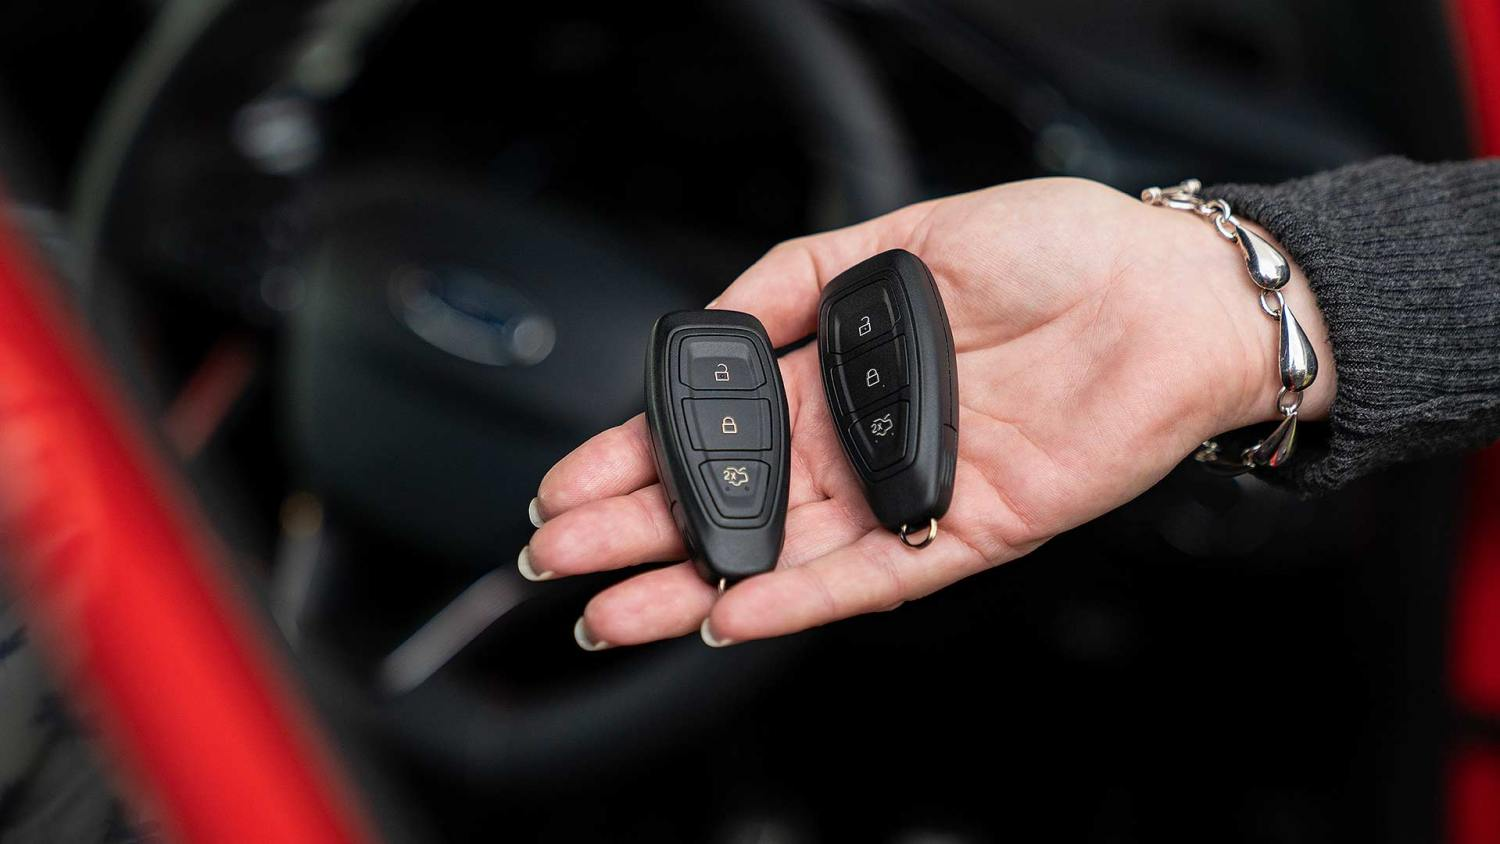 New smart Ford keyfobs